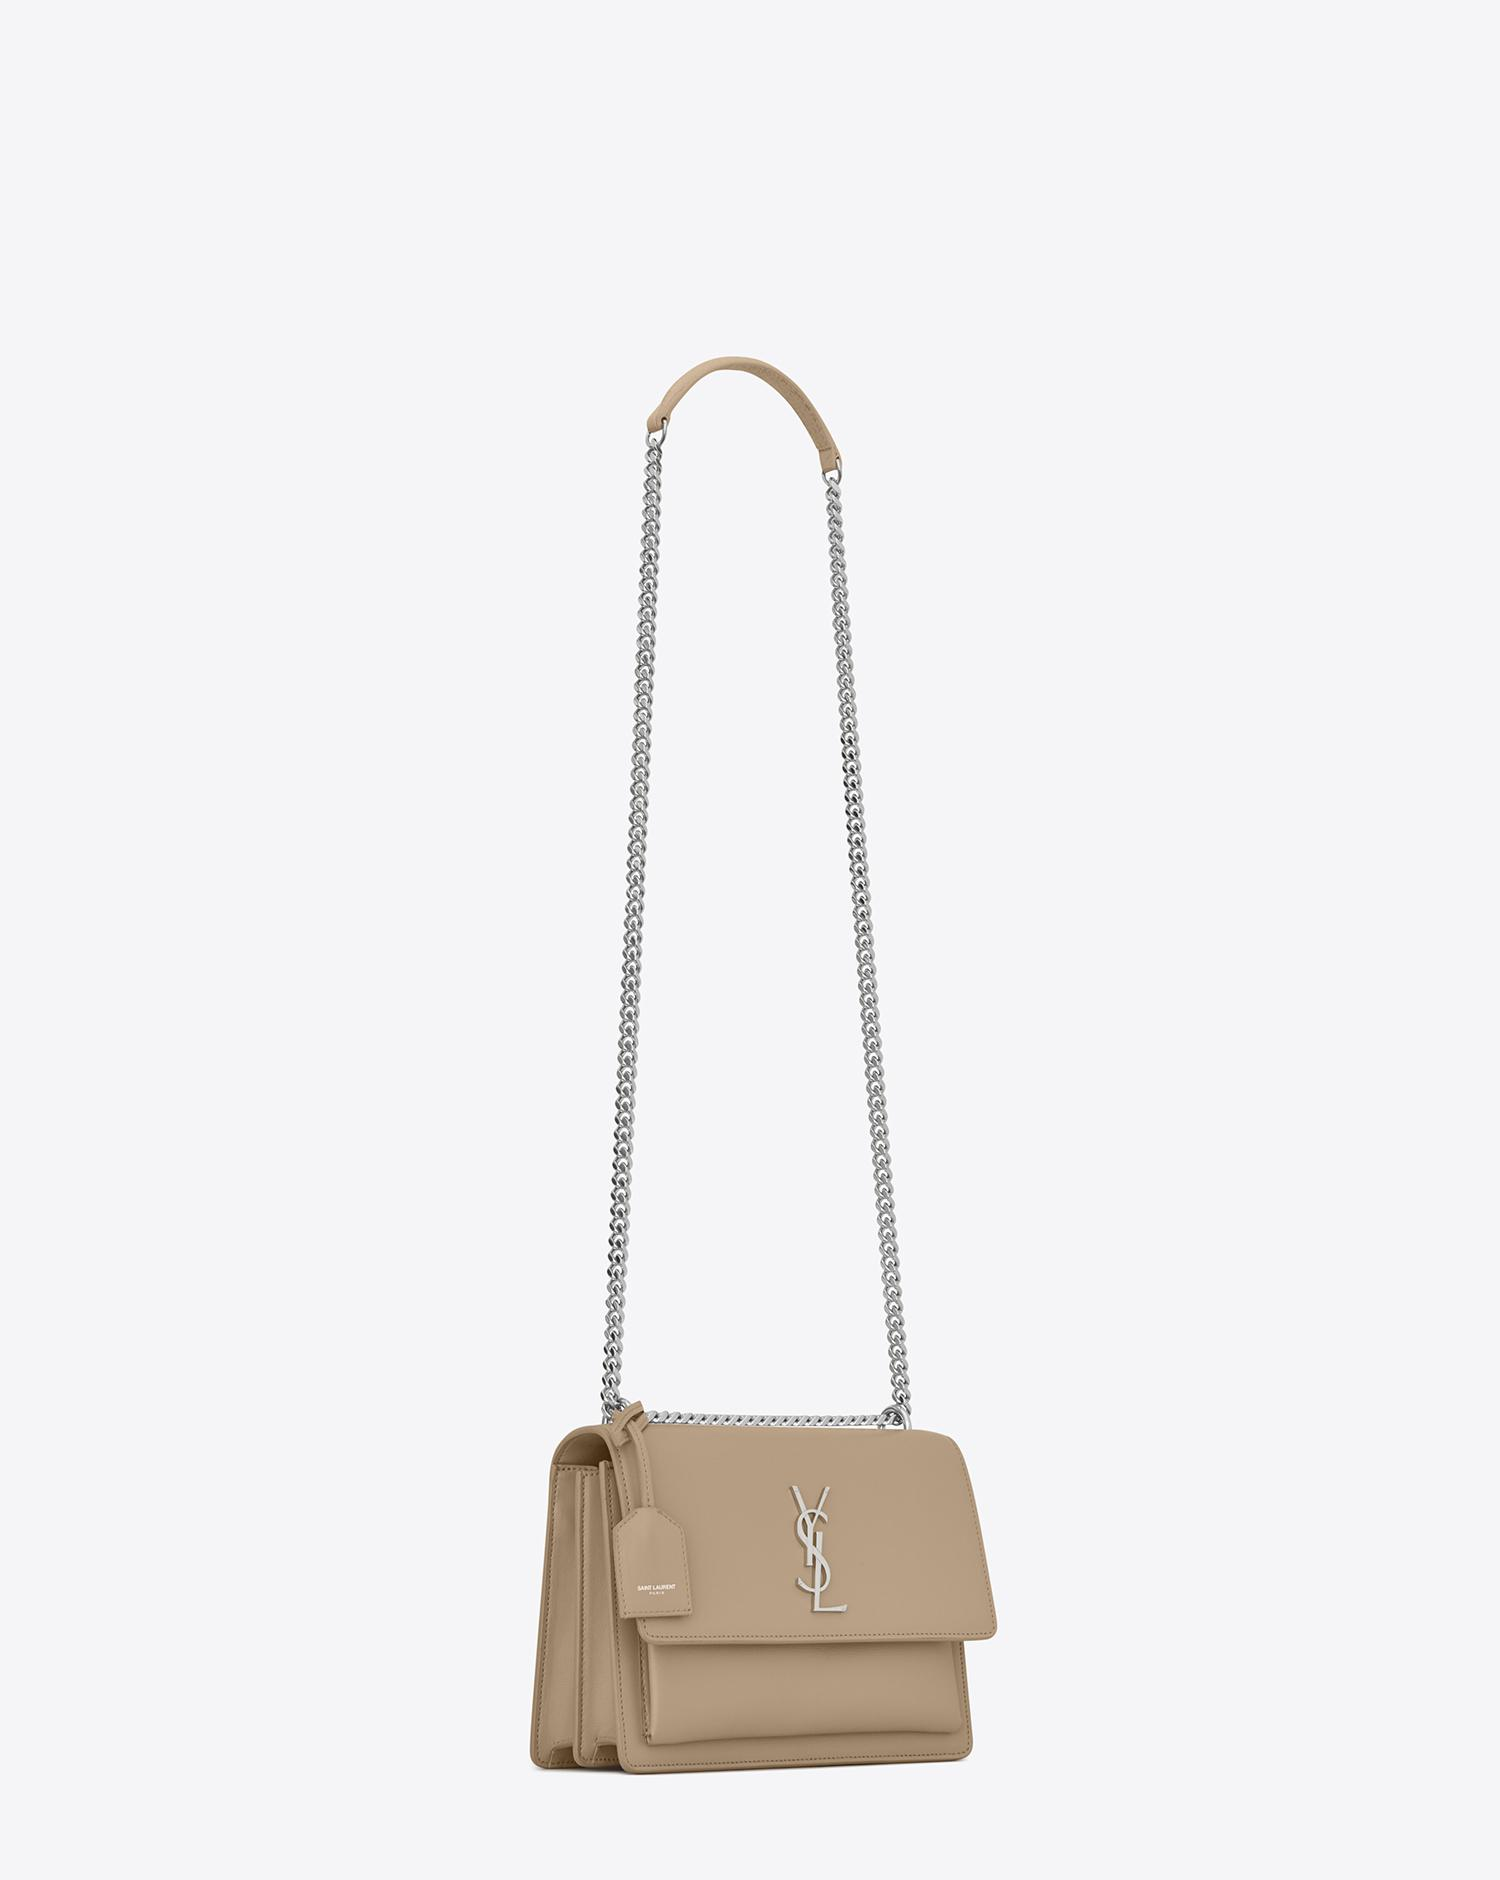 Lyst - Saint Laurent Sunset Medium In Smooth Leather in Natural 422640656e07f